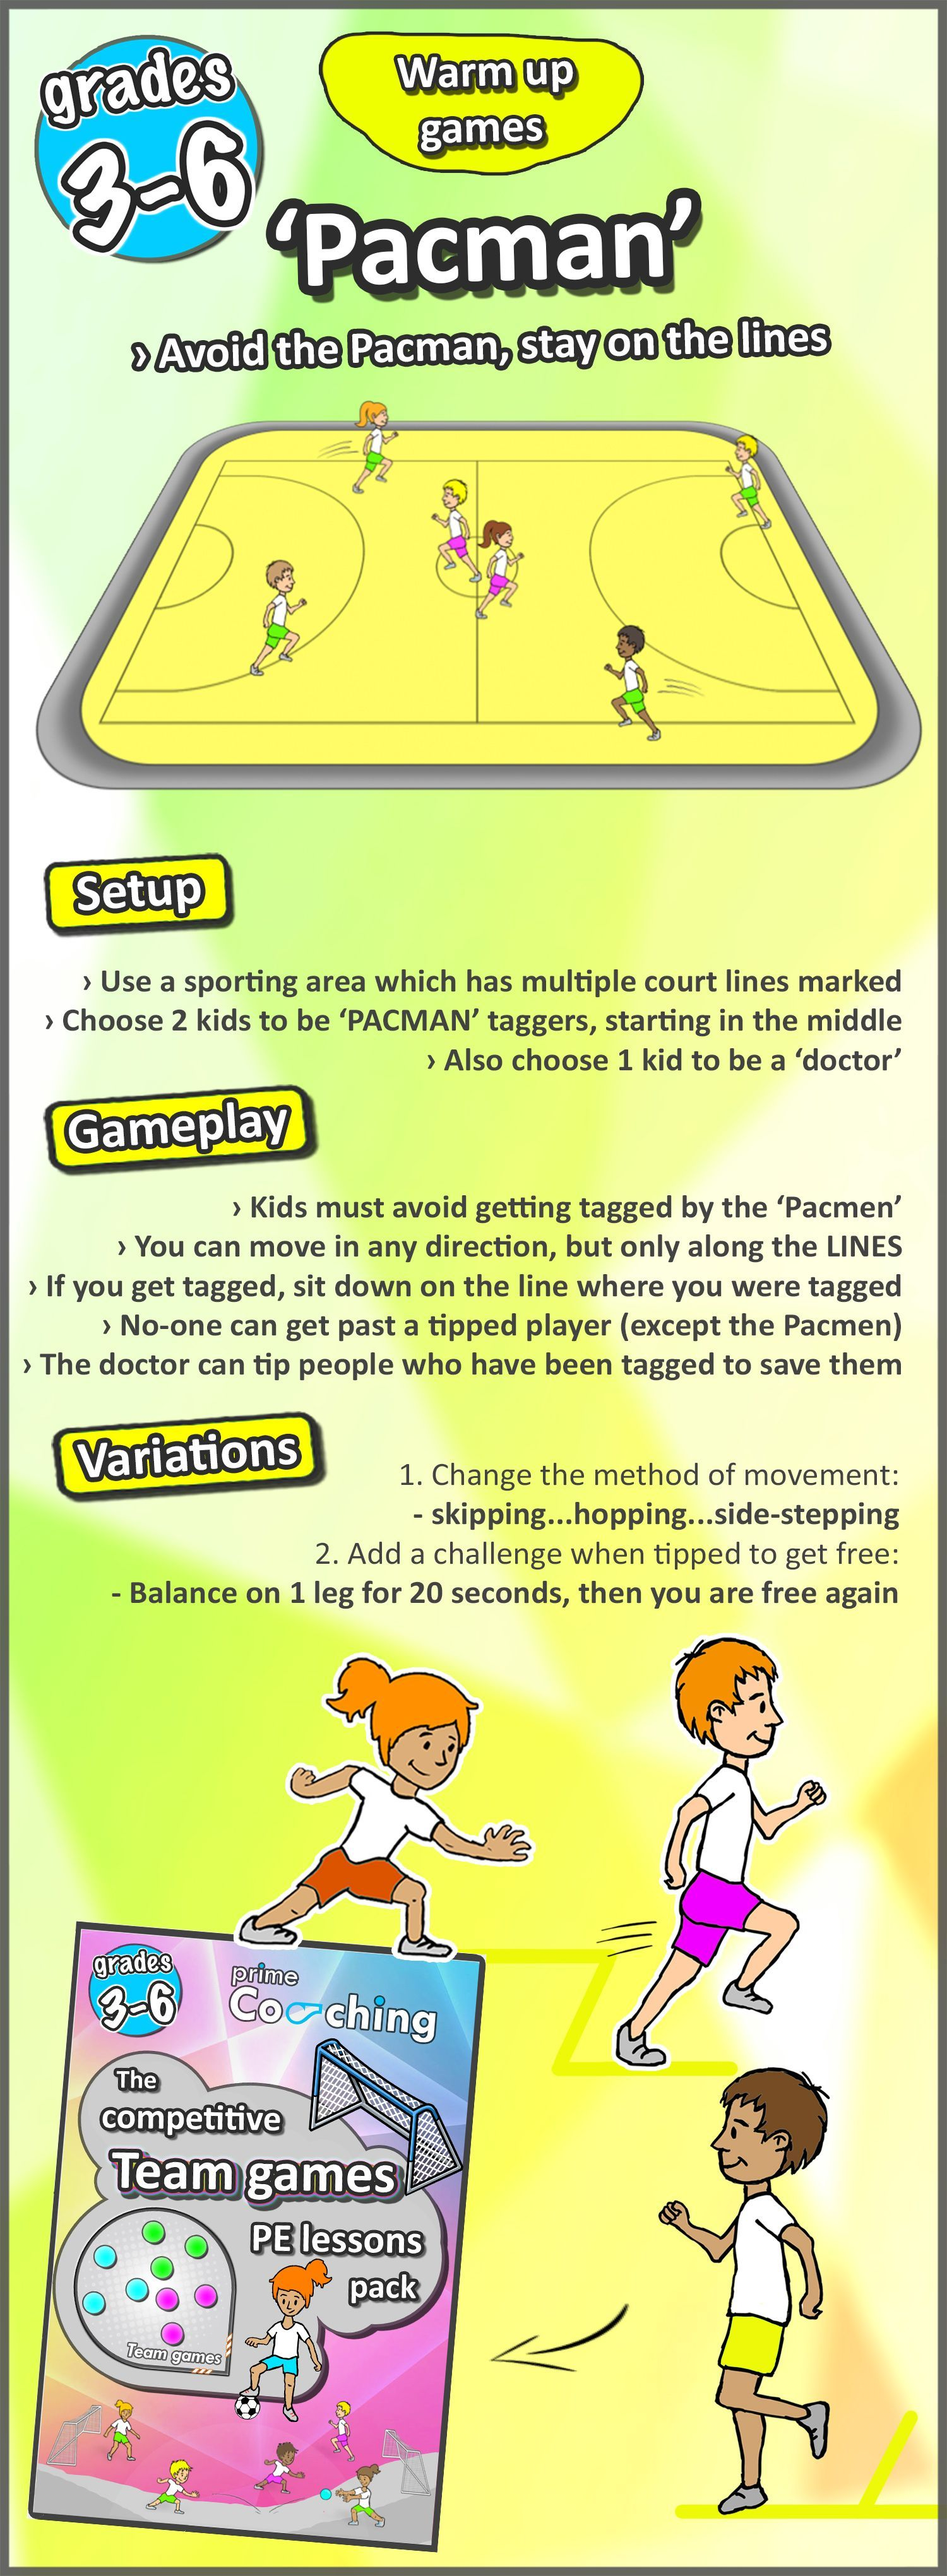 8 Great Warm Up Games For Your Pe Lessons